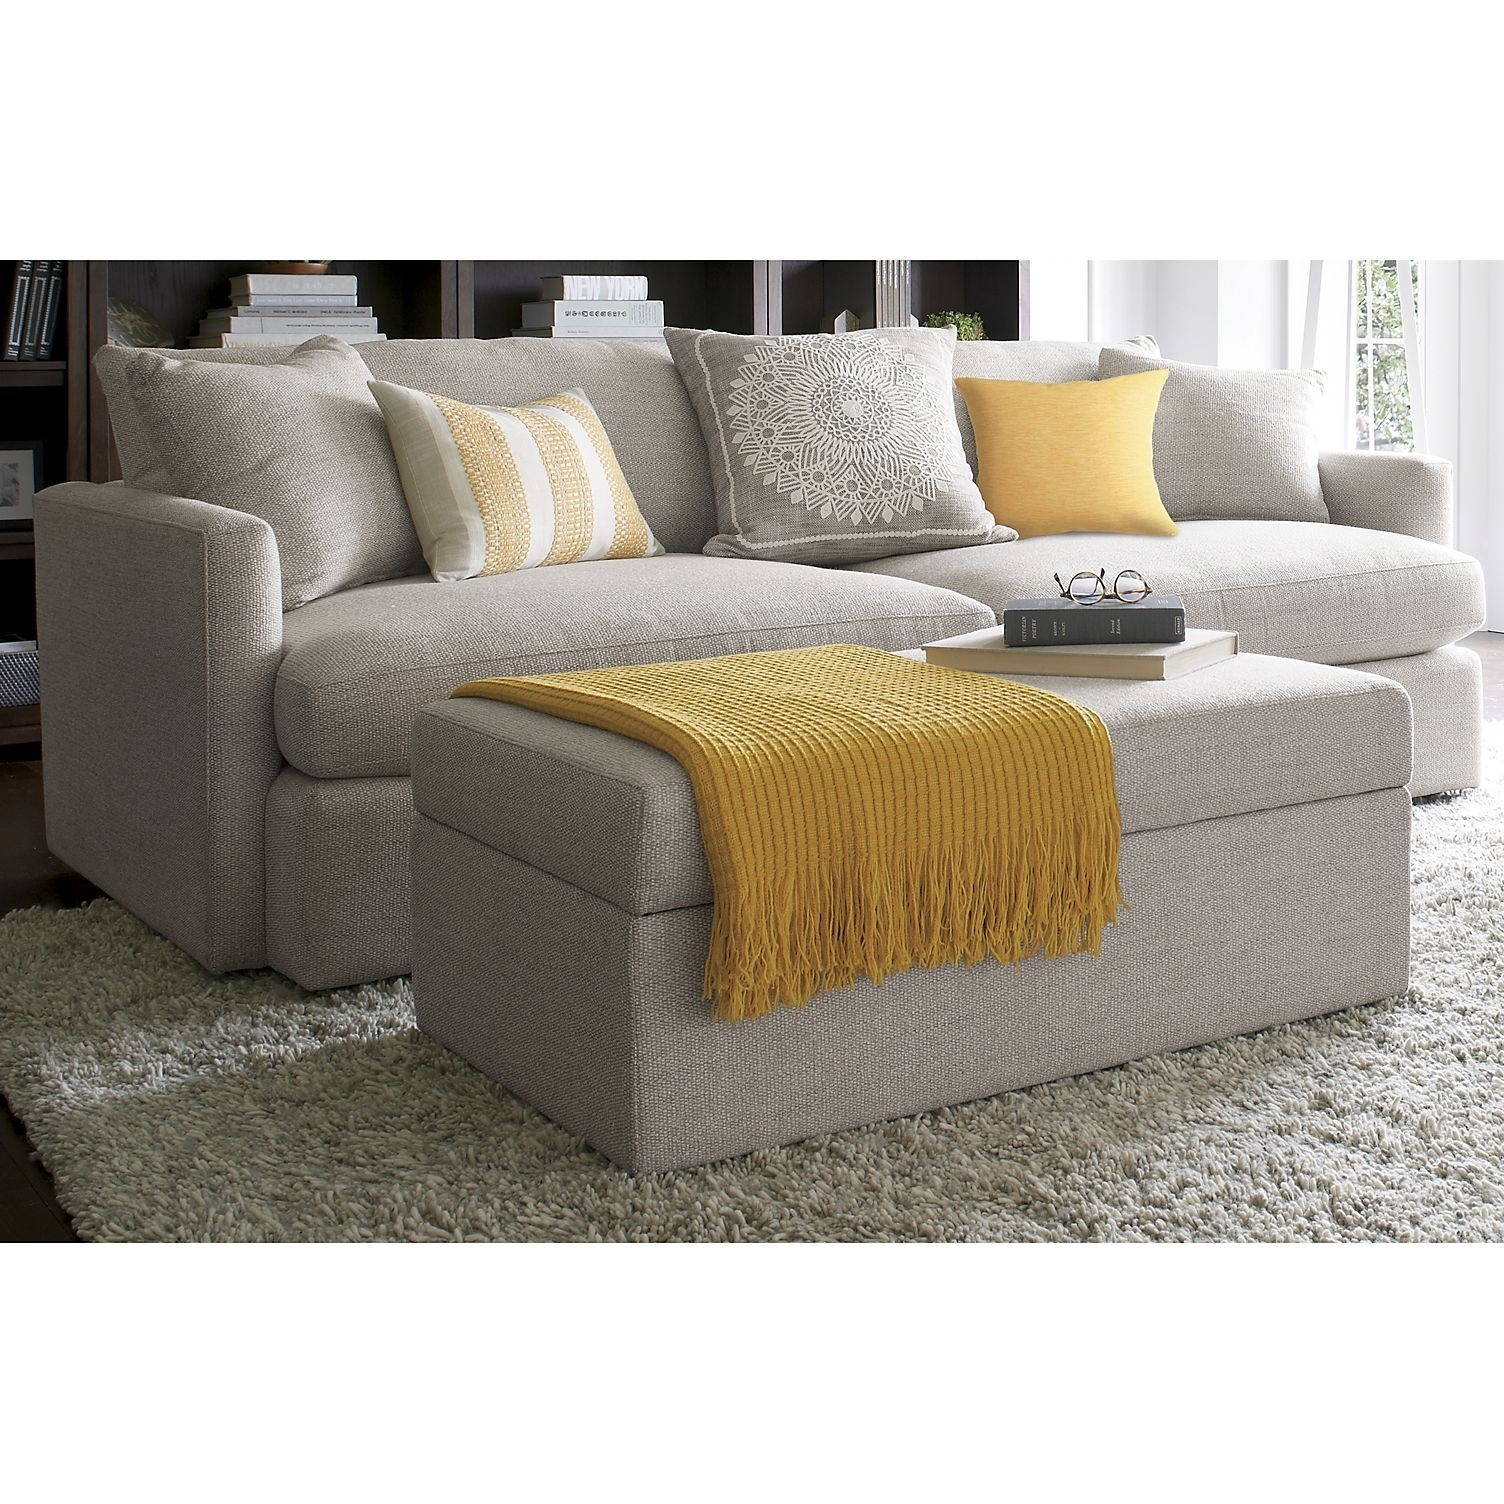 Lounge Ii Storage Ottoman With Tray | My Future Home | Pinterest regarding Declan 3 Piece Power Reclining Sectionals With Right Facing Console Loveseat (Image 23 of 30)